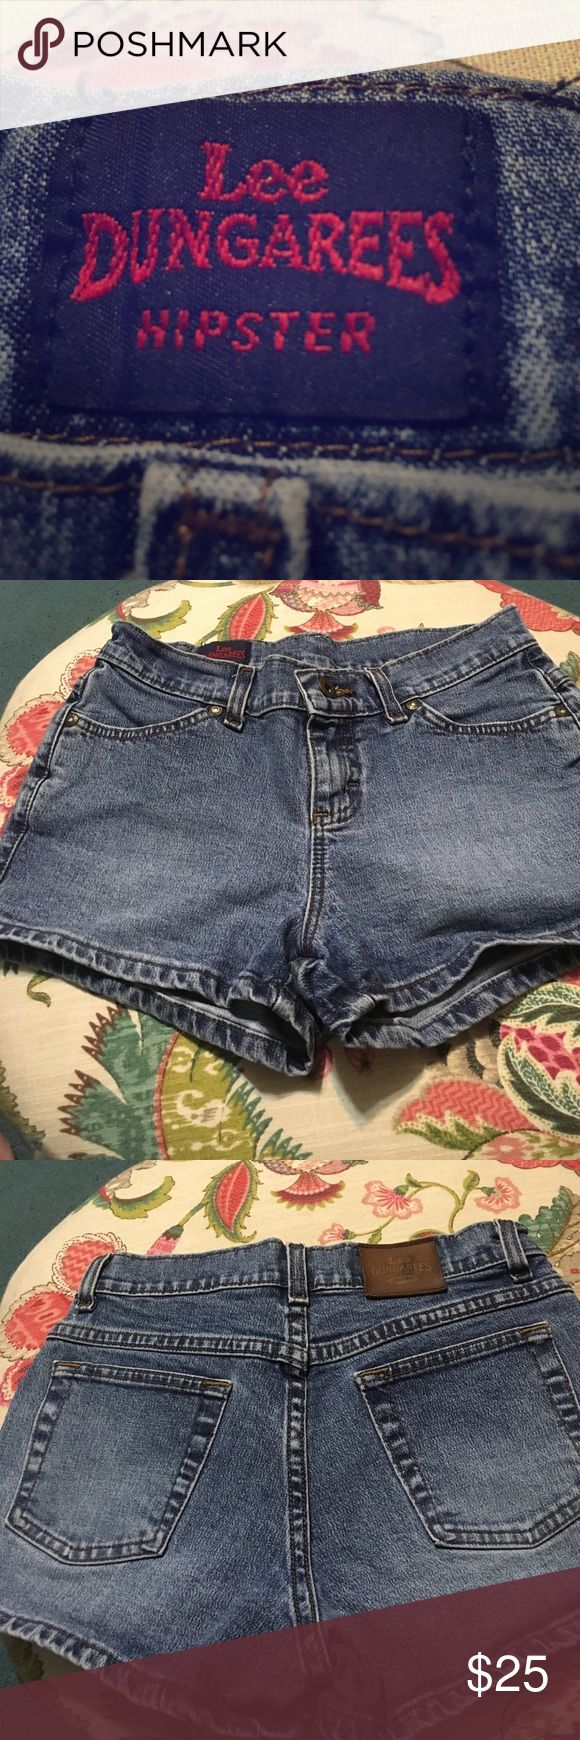 Vintage Lee dungaree hipster shorts Used size 3 Lee dungarees hipster shorts, not Levi's Levi's Shorts Jean Shorts